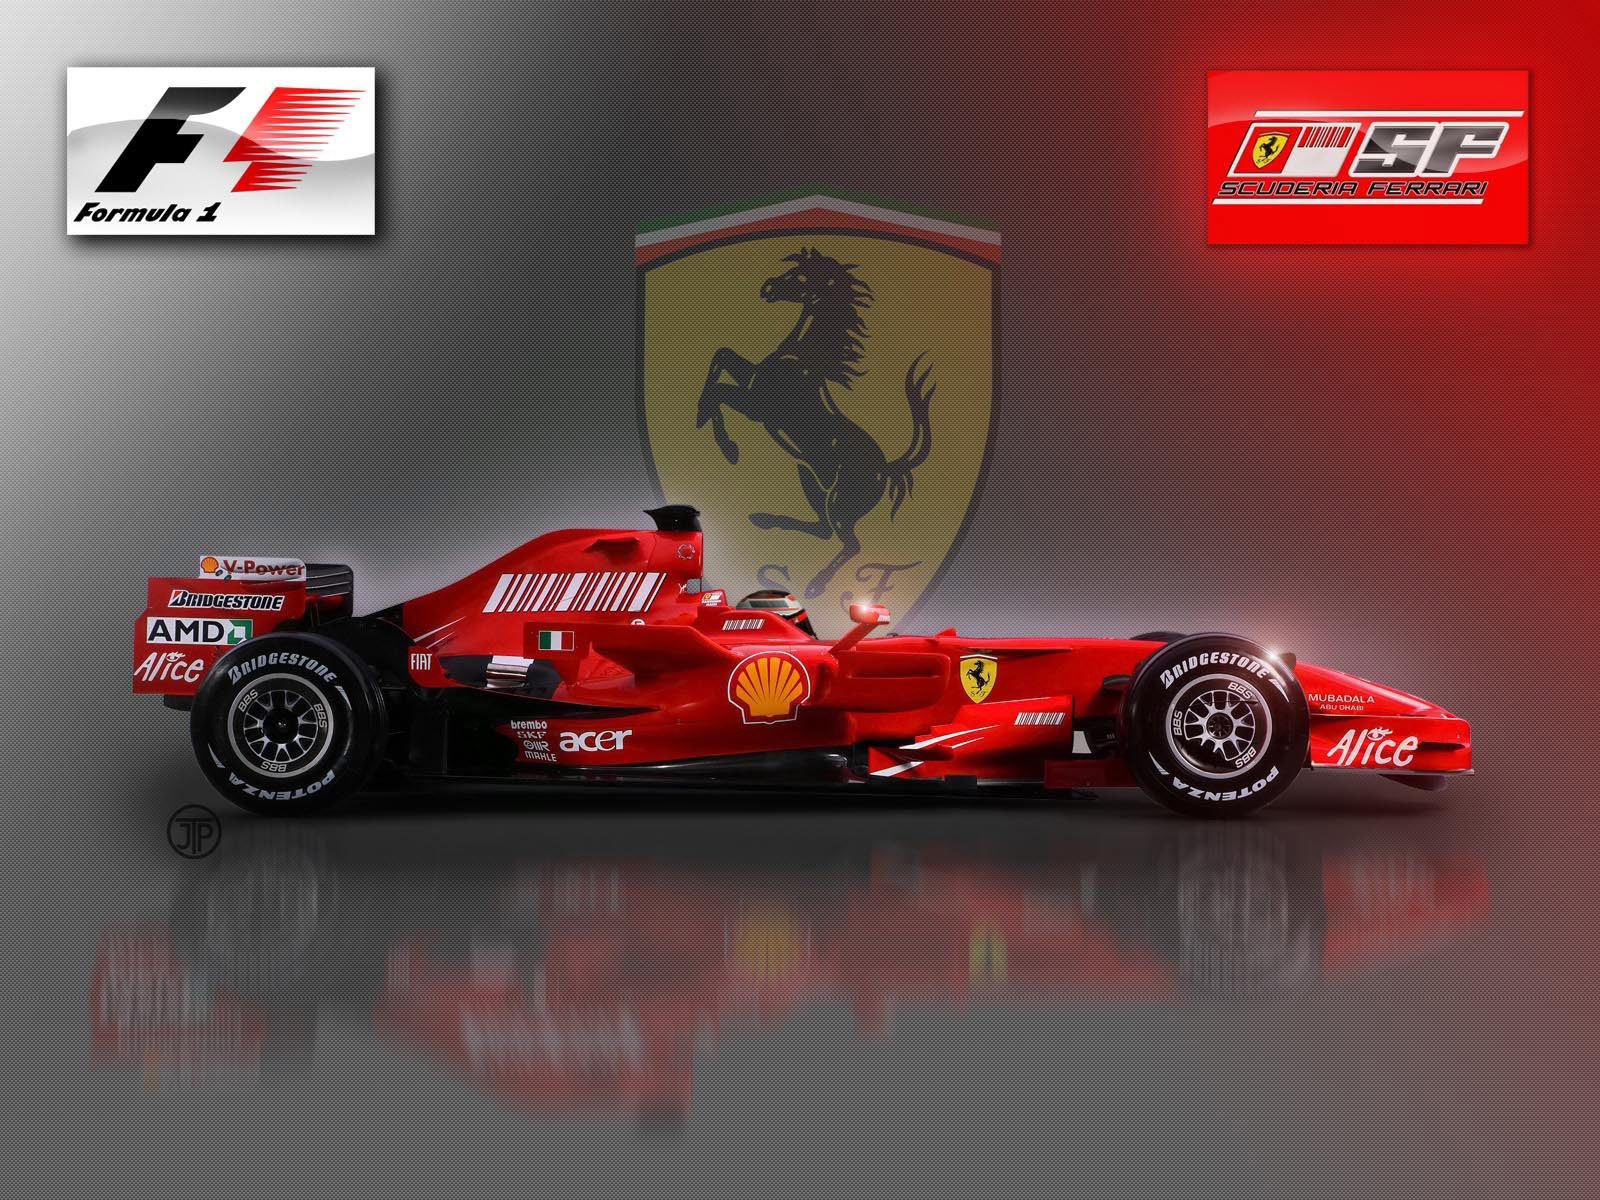 Ferrari f1 car hd wallpaper 11